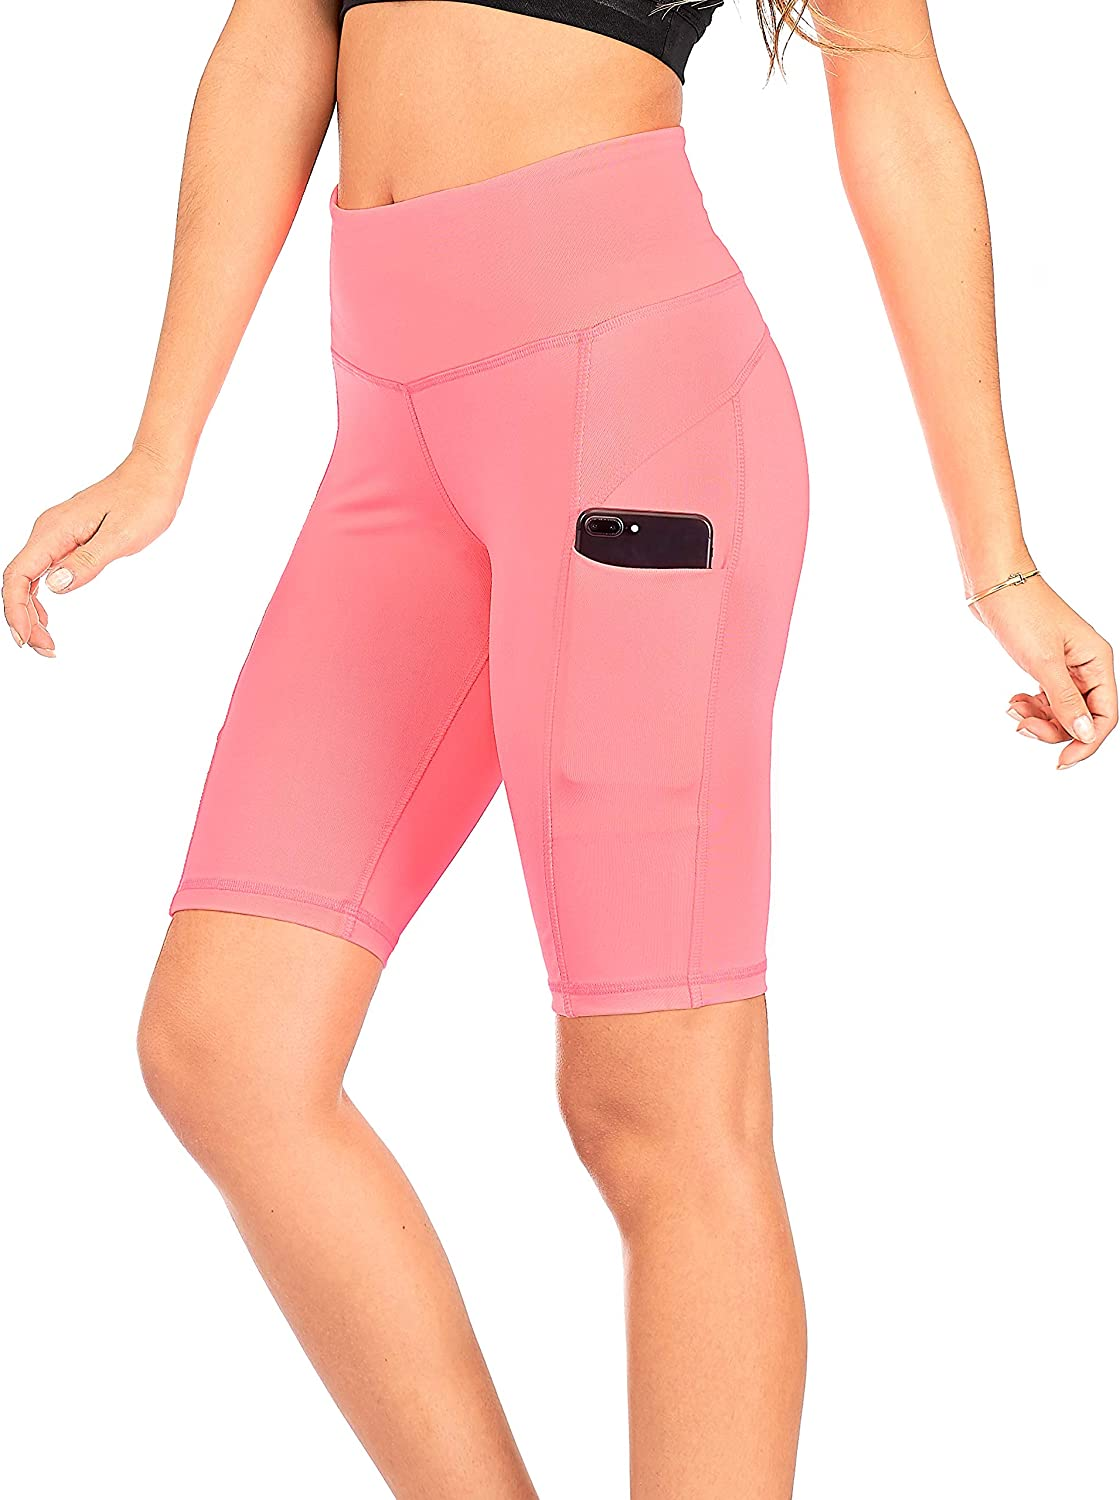 Yoga Athletic Short for Women DEAR SPARKLE High Waist Workout Shorts with 3 Pockets for Women S3